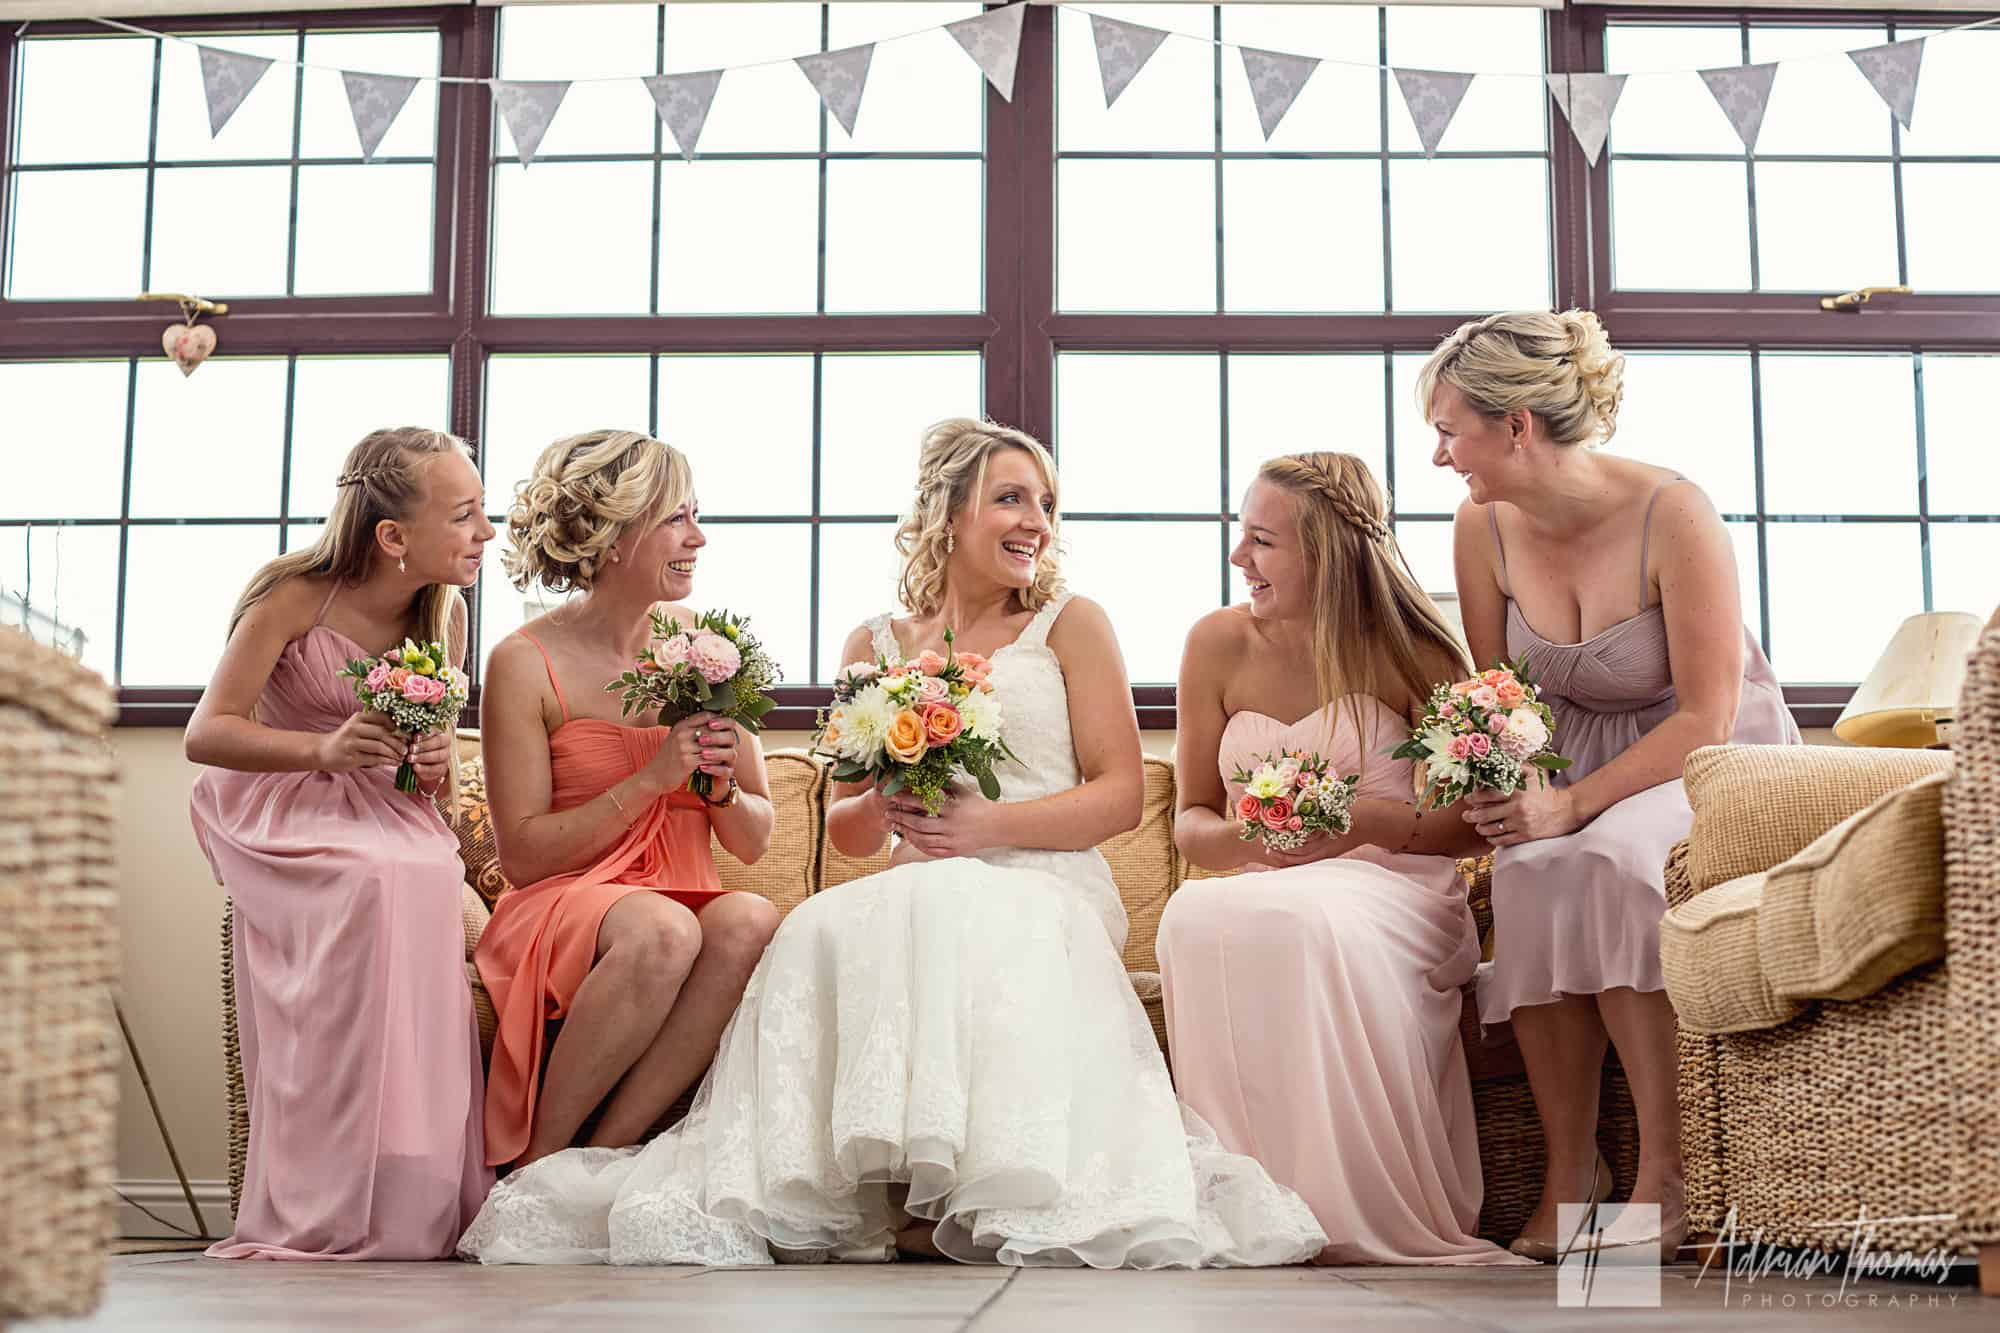 Bride and Bridesmaids chatting before wedding at Pentre Tai Farm in Bassaleg.